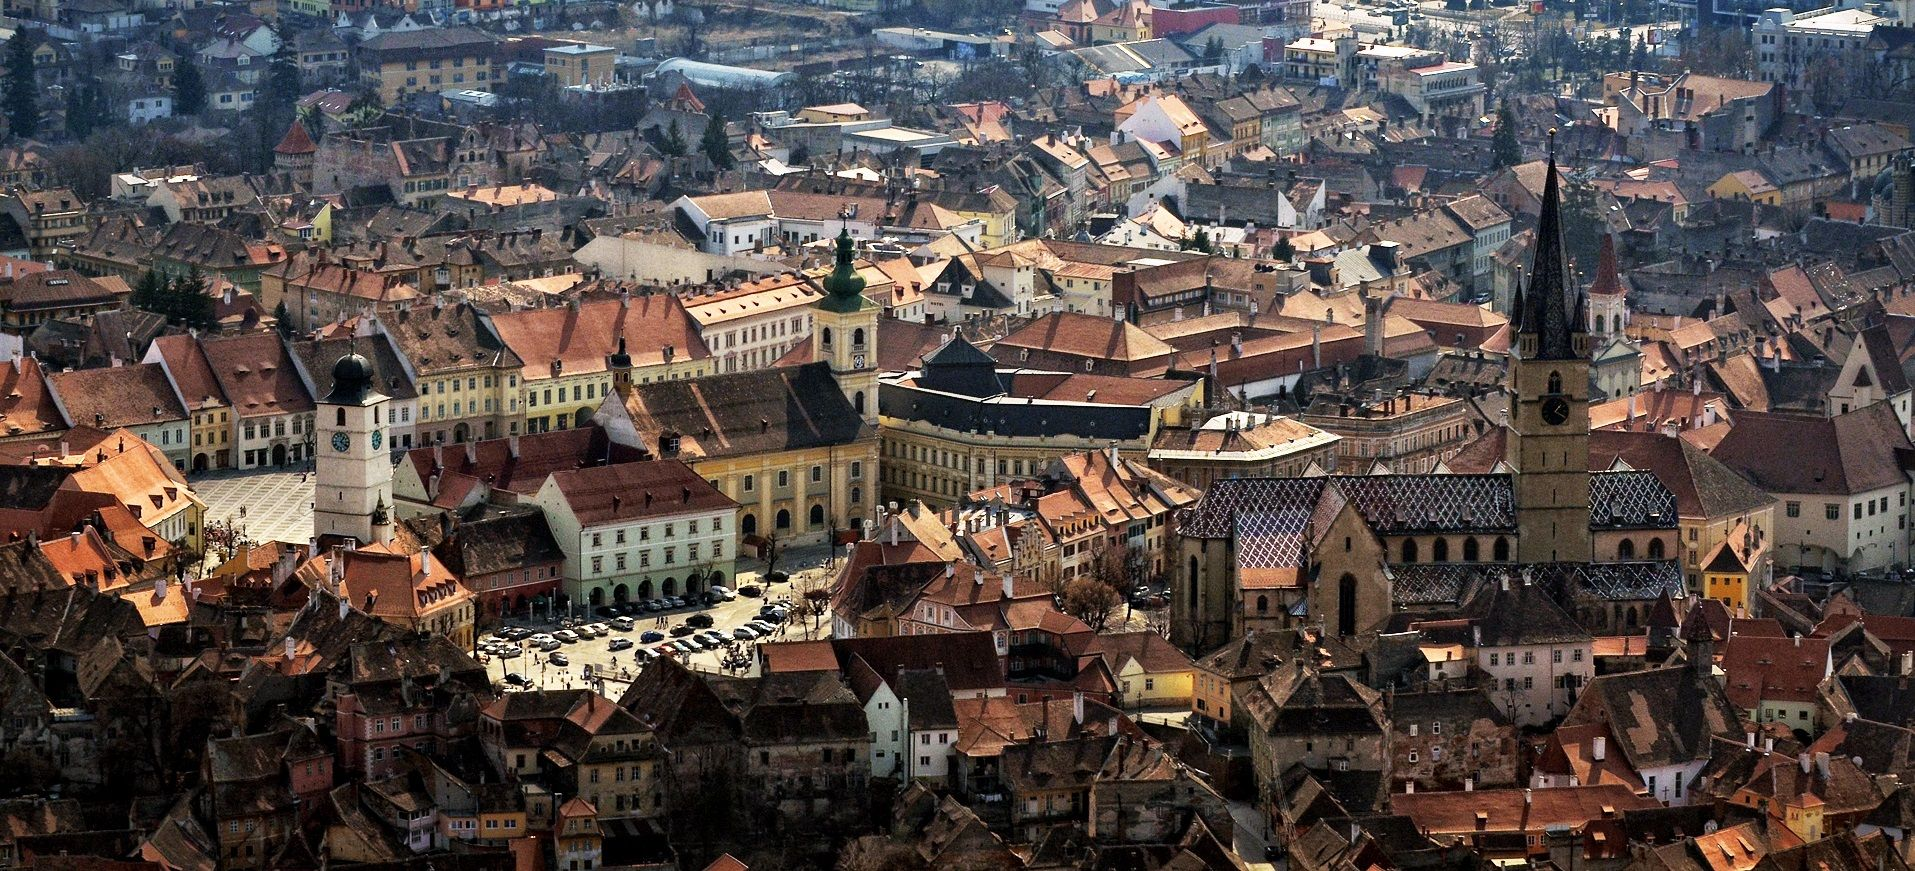 Sibiu is one of the most important cultural centres of